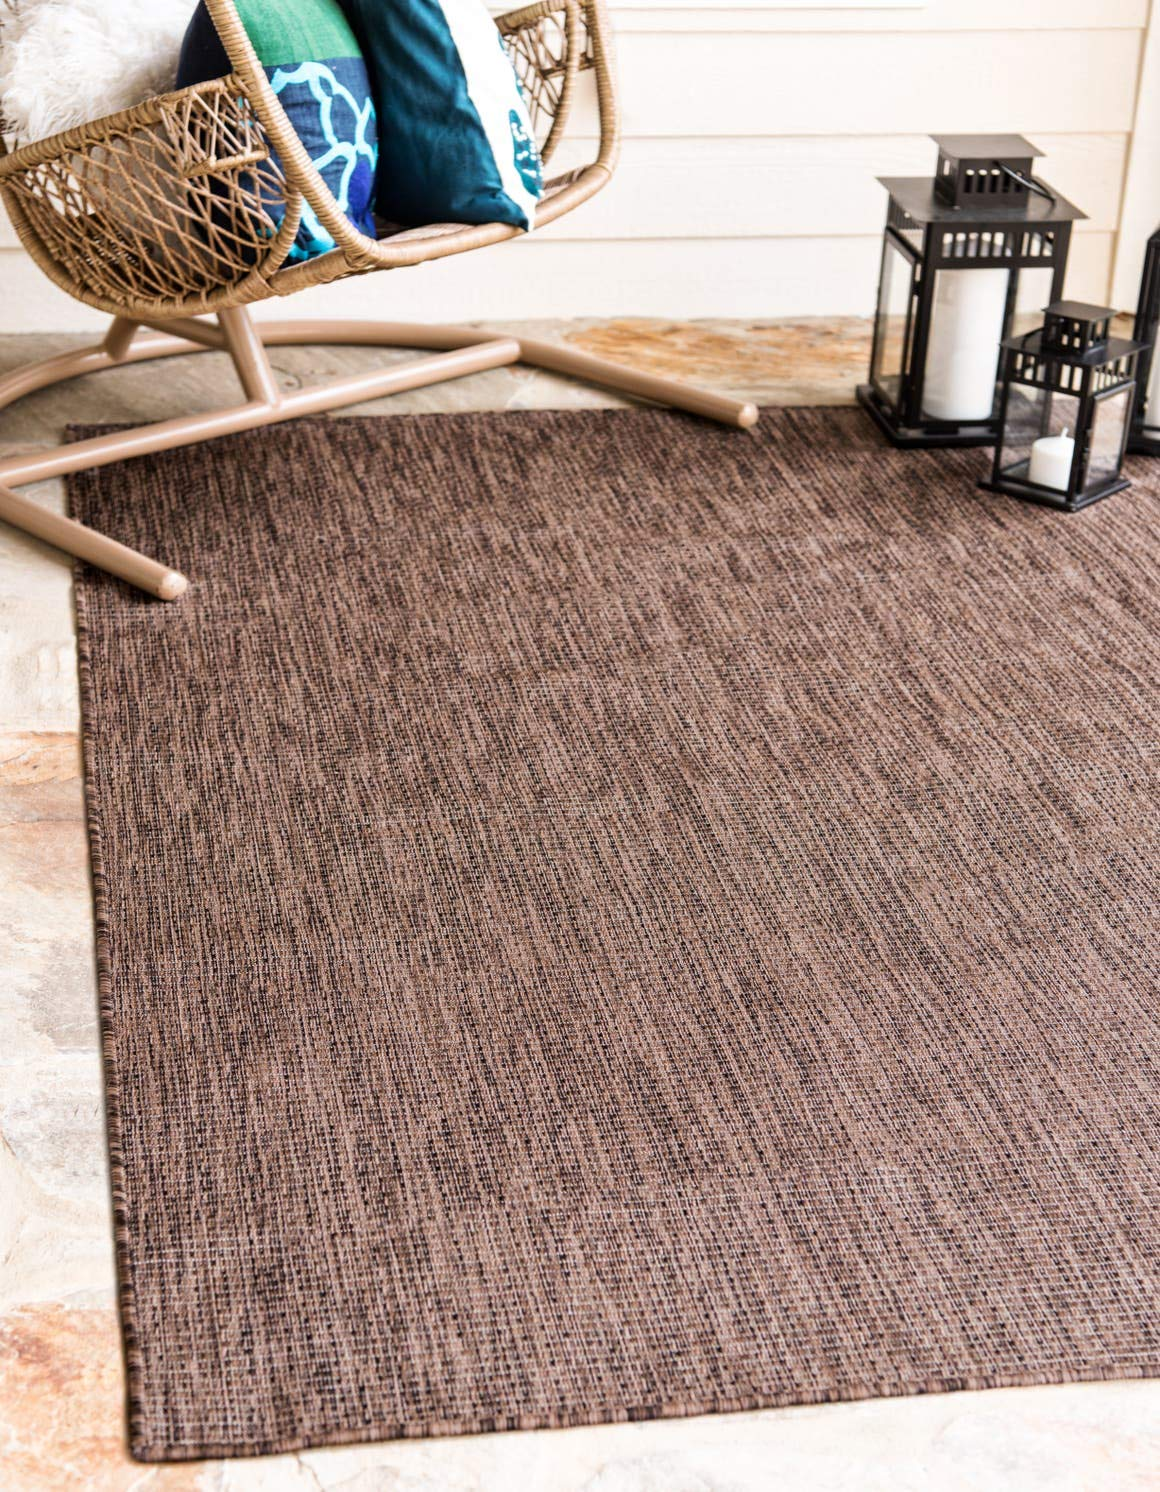 Unique Loom Outdoor Solid Collection Casual Transitional Indoor and Outdoor Flatweave Light Brown Area Rug 5 0 x 8 0